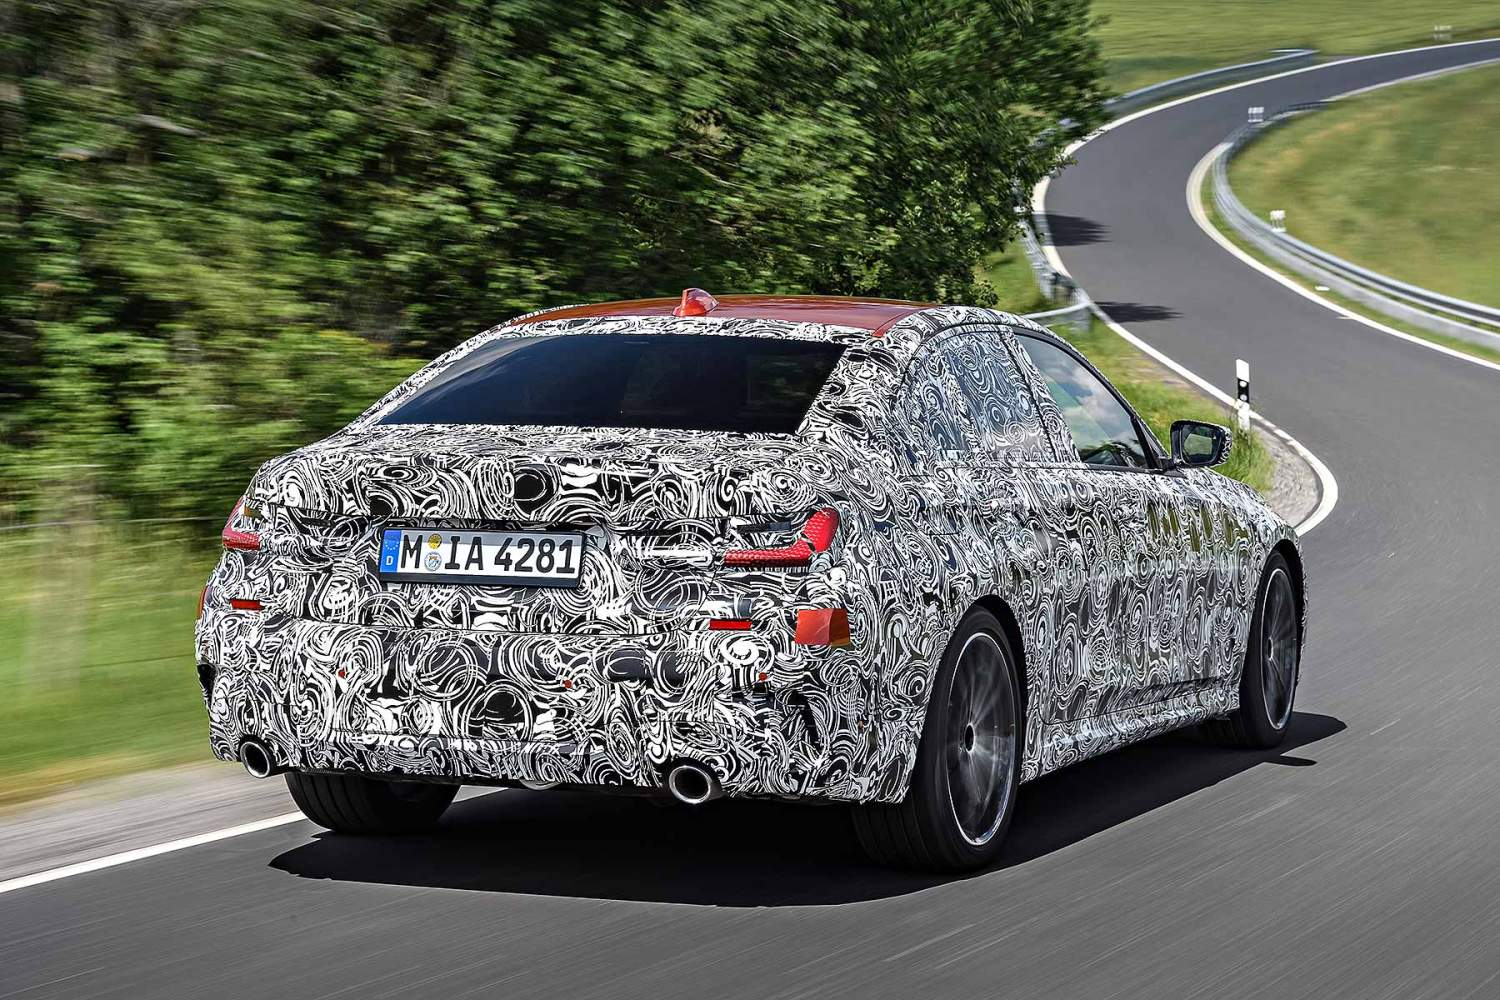 New 2019 BMW 3 Series prototype Nurburgring test